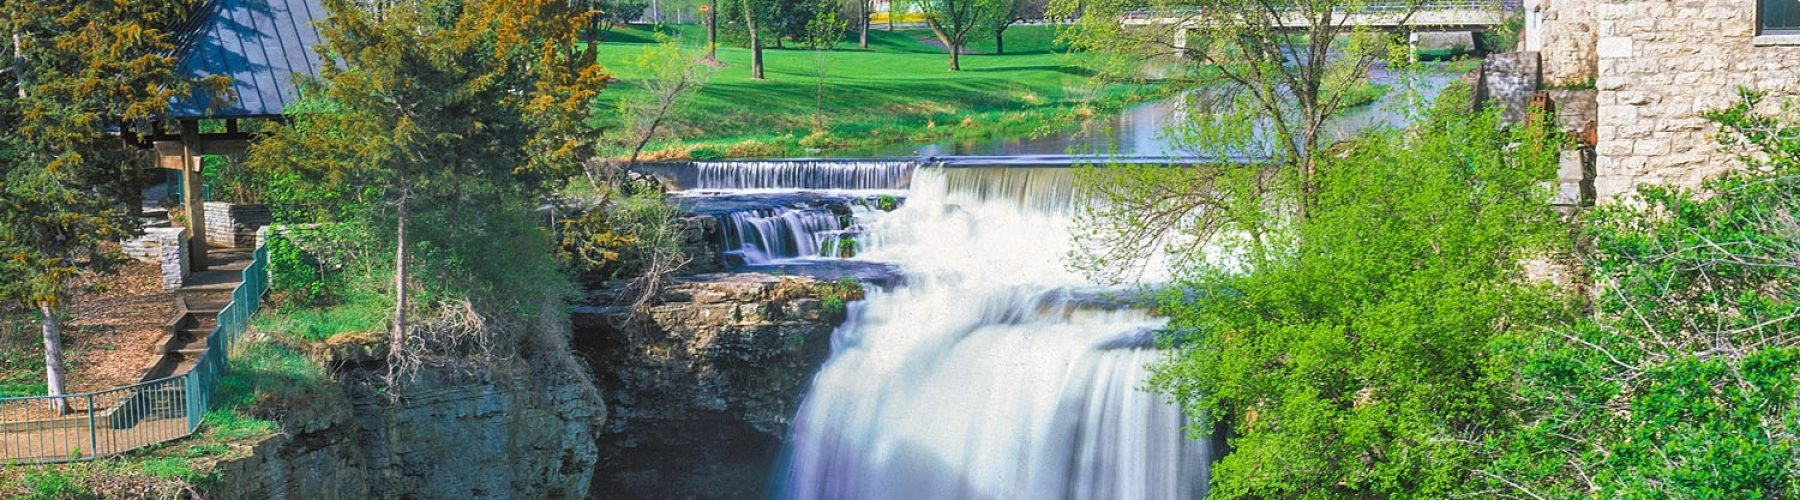 vermillion-falls-contact-page